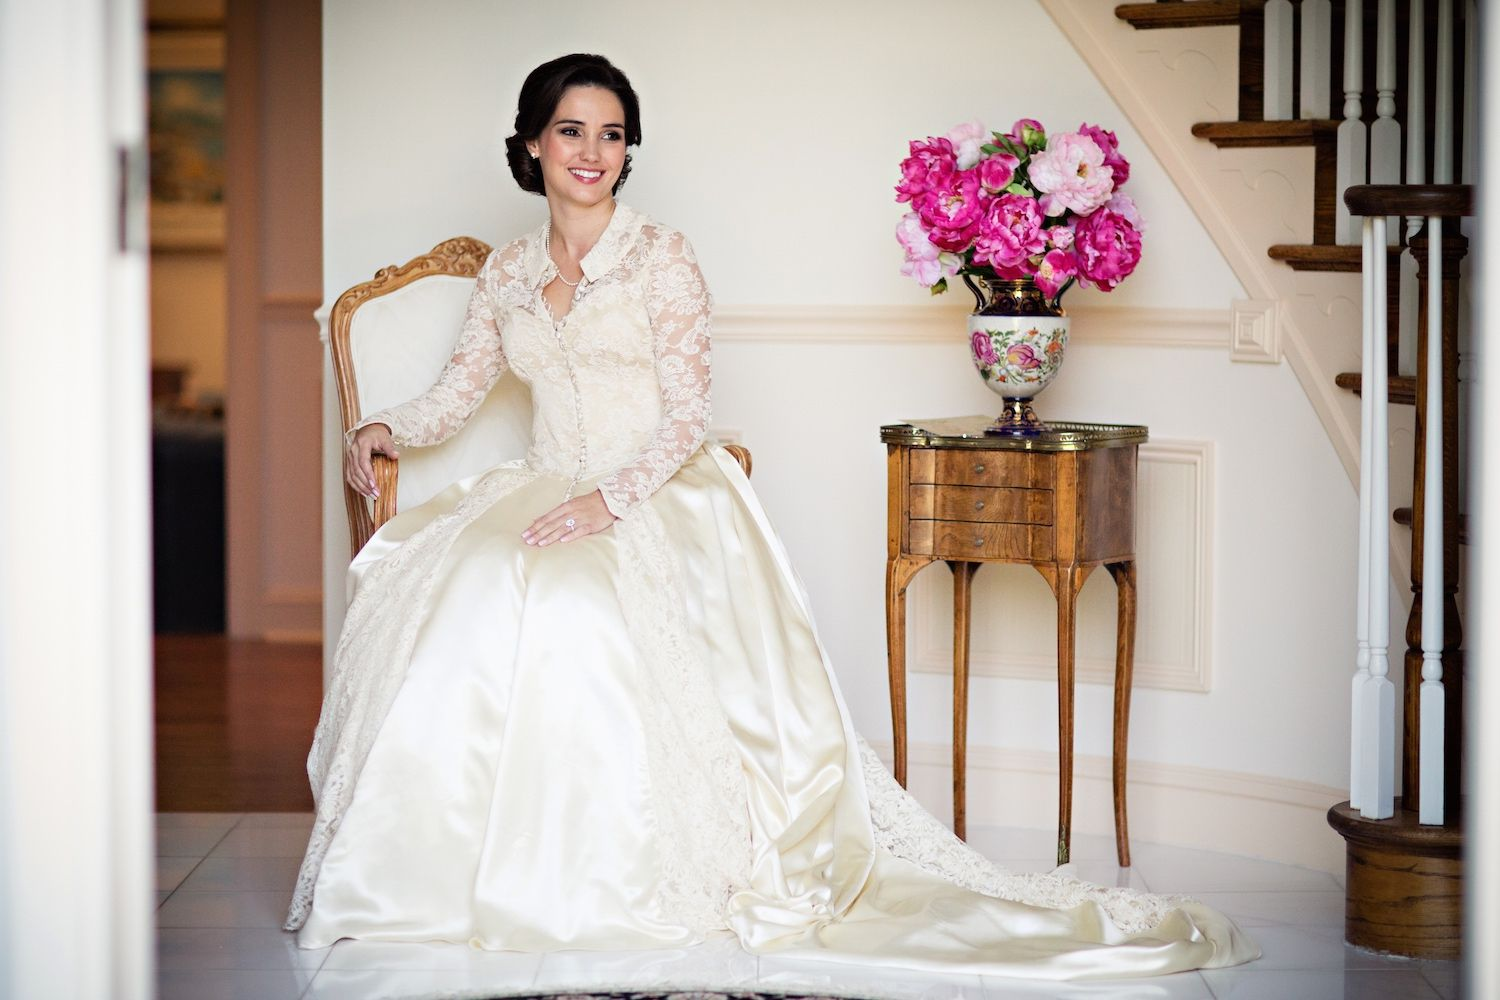 How to Preserve Your Wedding Dress Wedding Dresses for